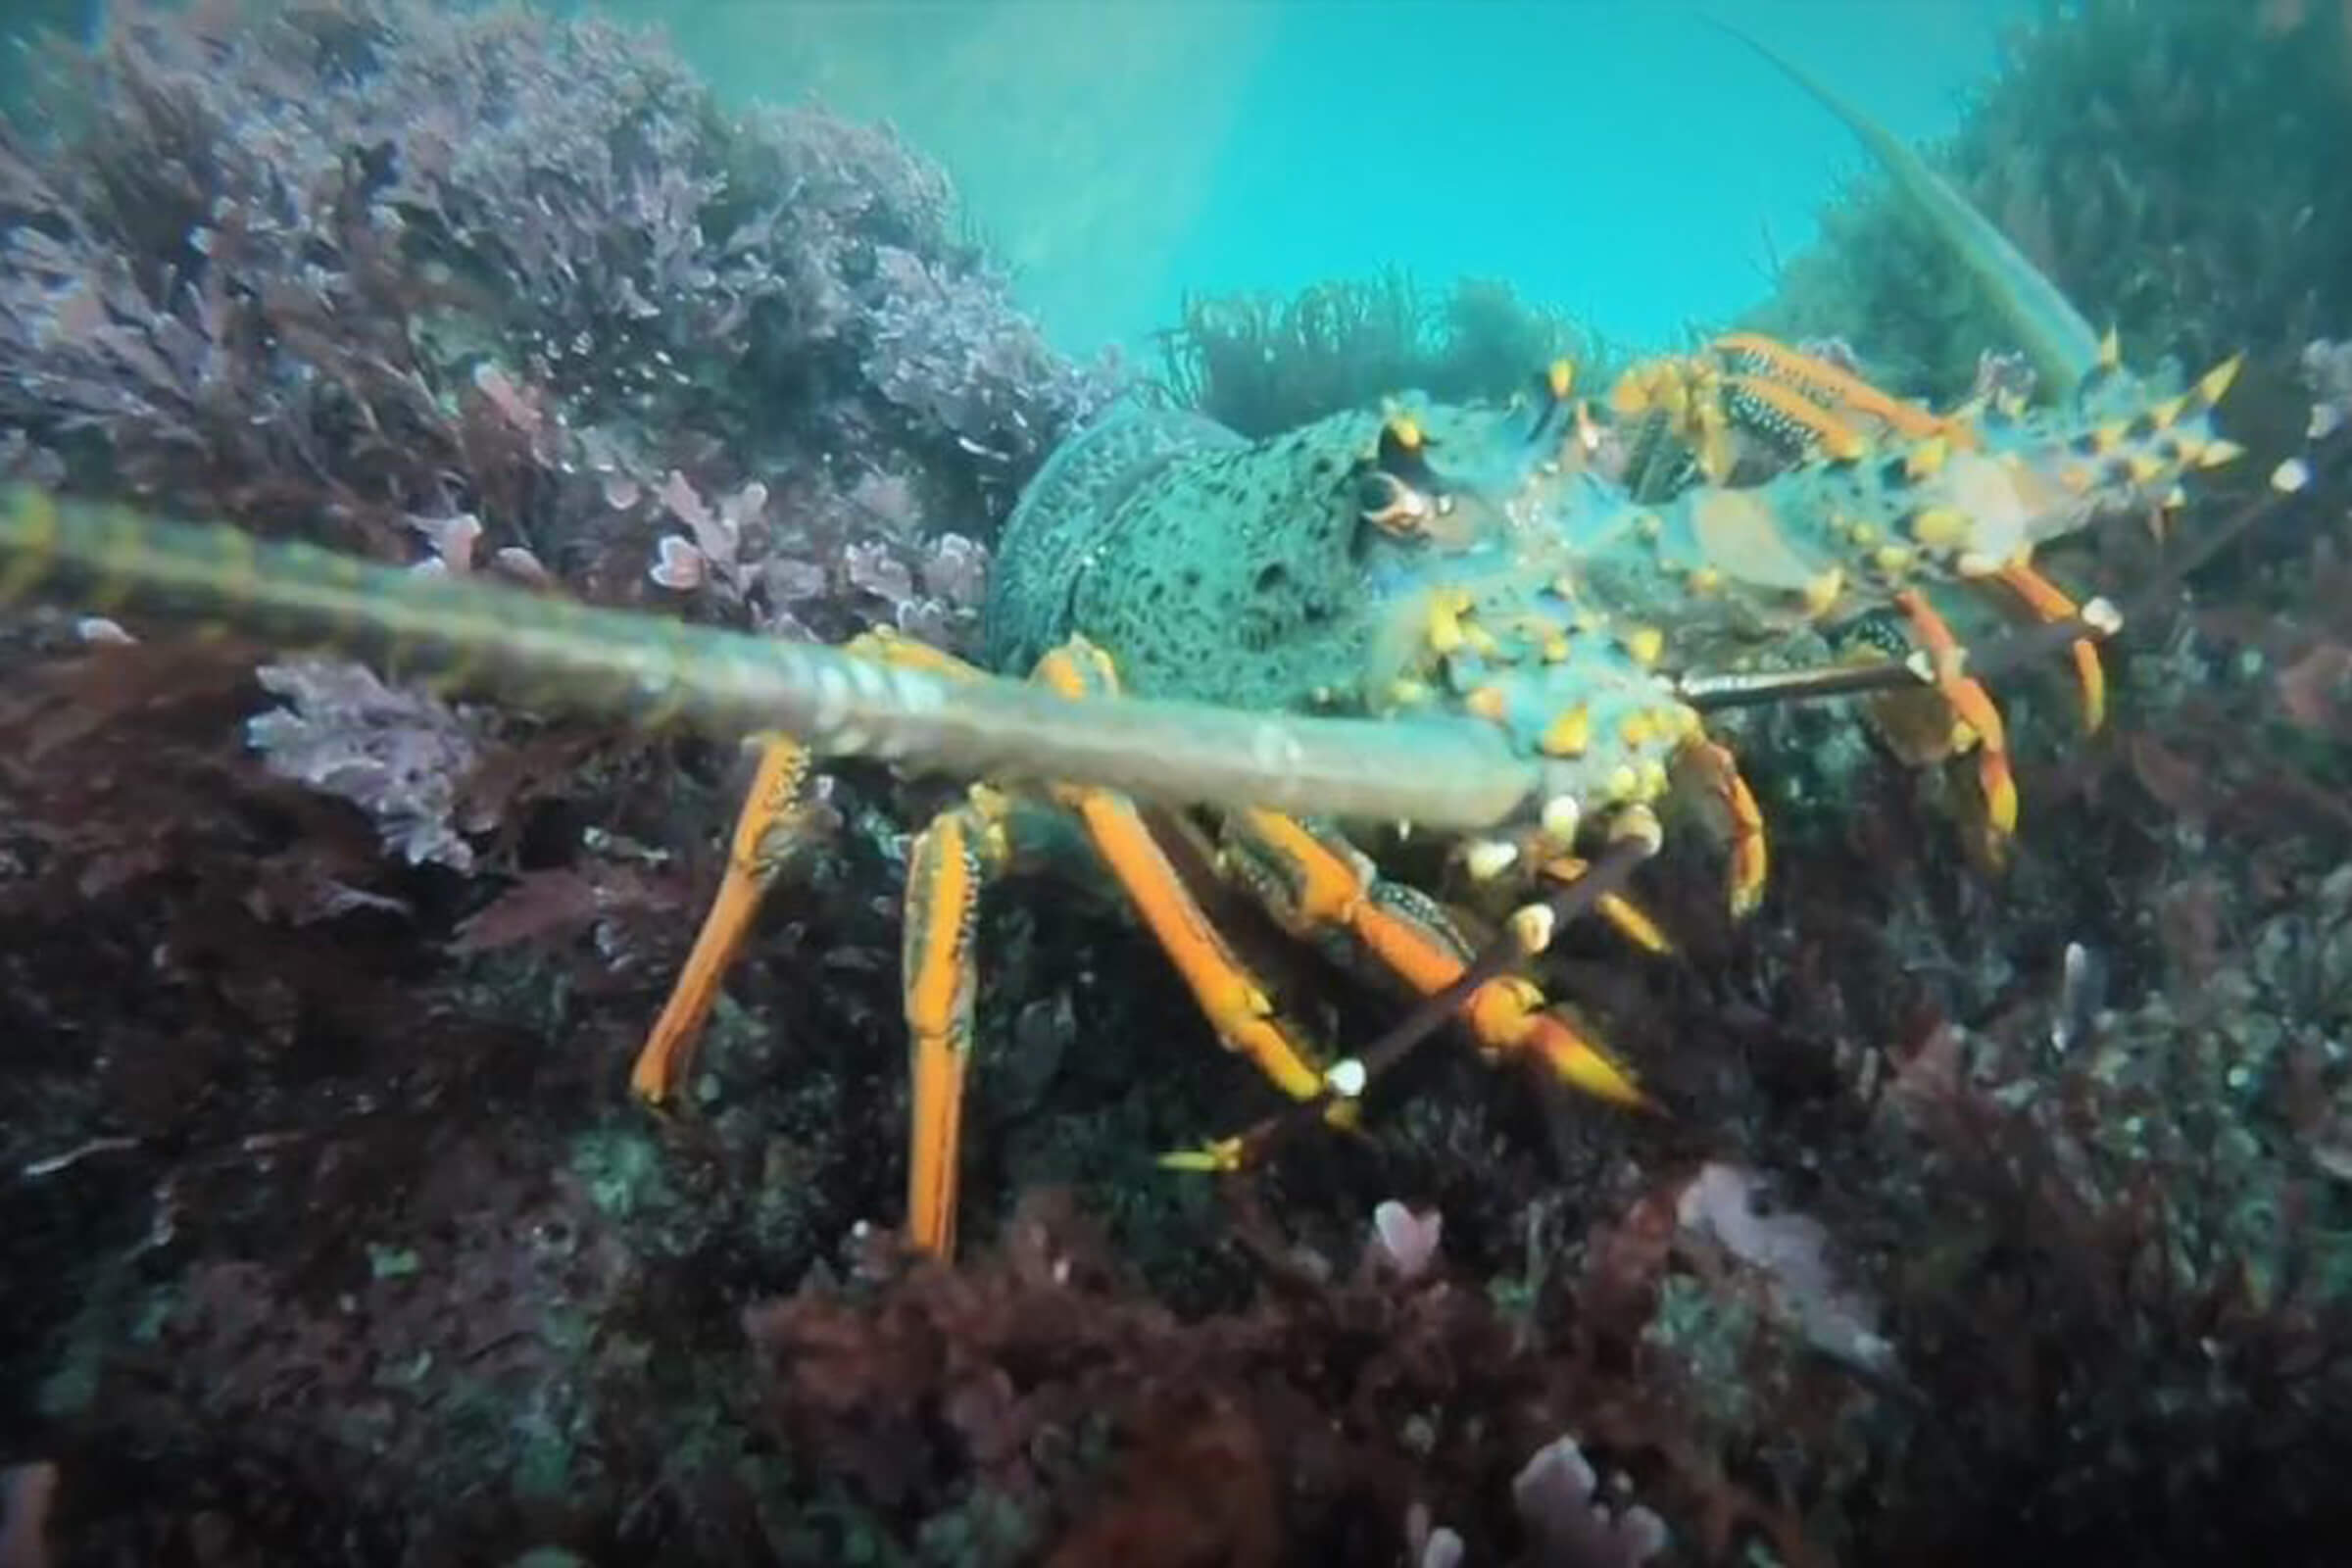 Freediving for Crays, West Coast New Zealand